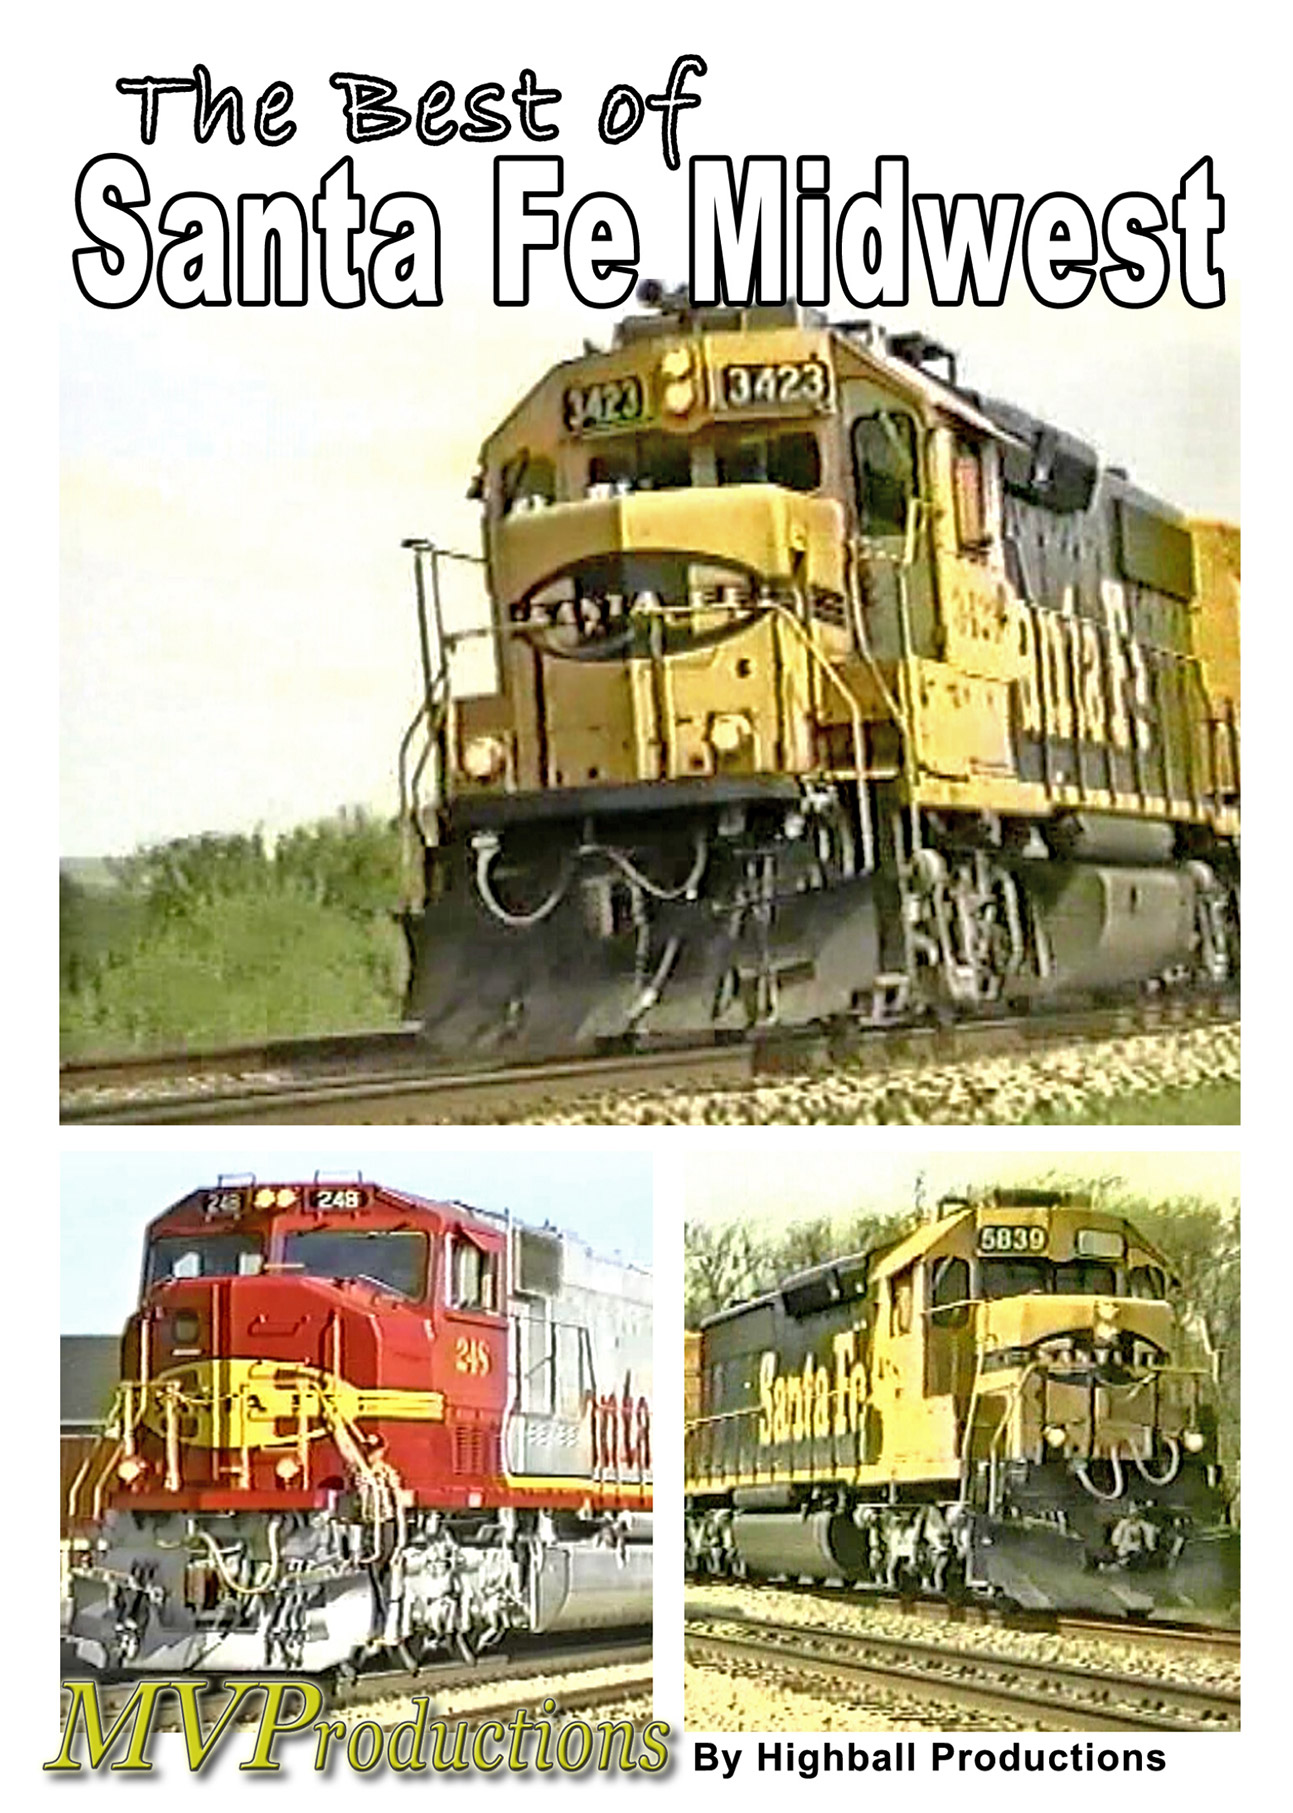 Best of Santa Fe - Midwest Train Video Midwest Video Productions MVBSF 601577880141